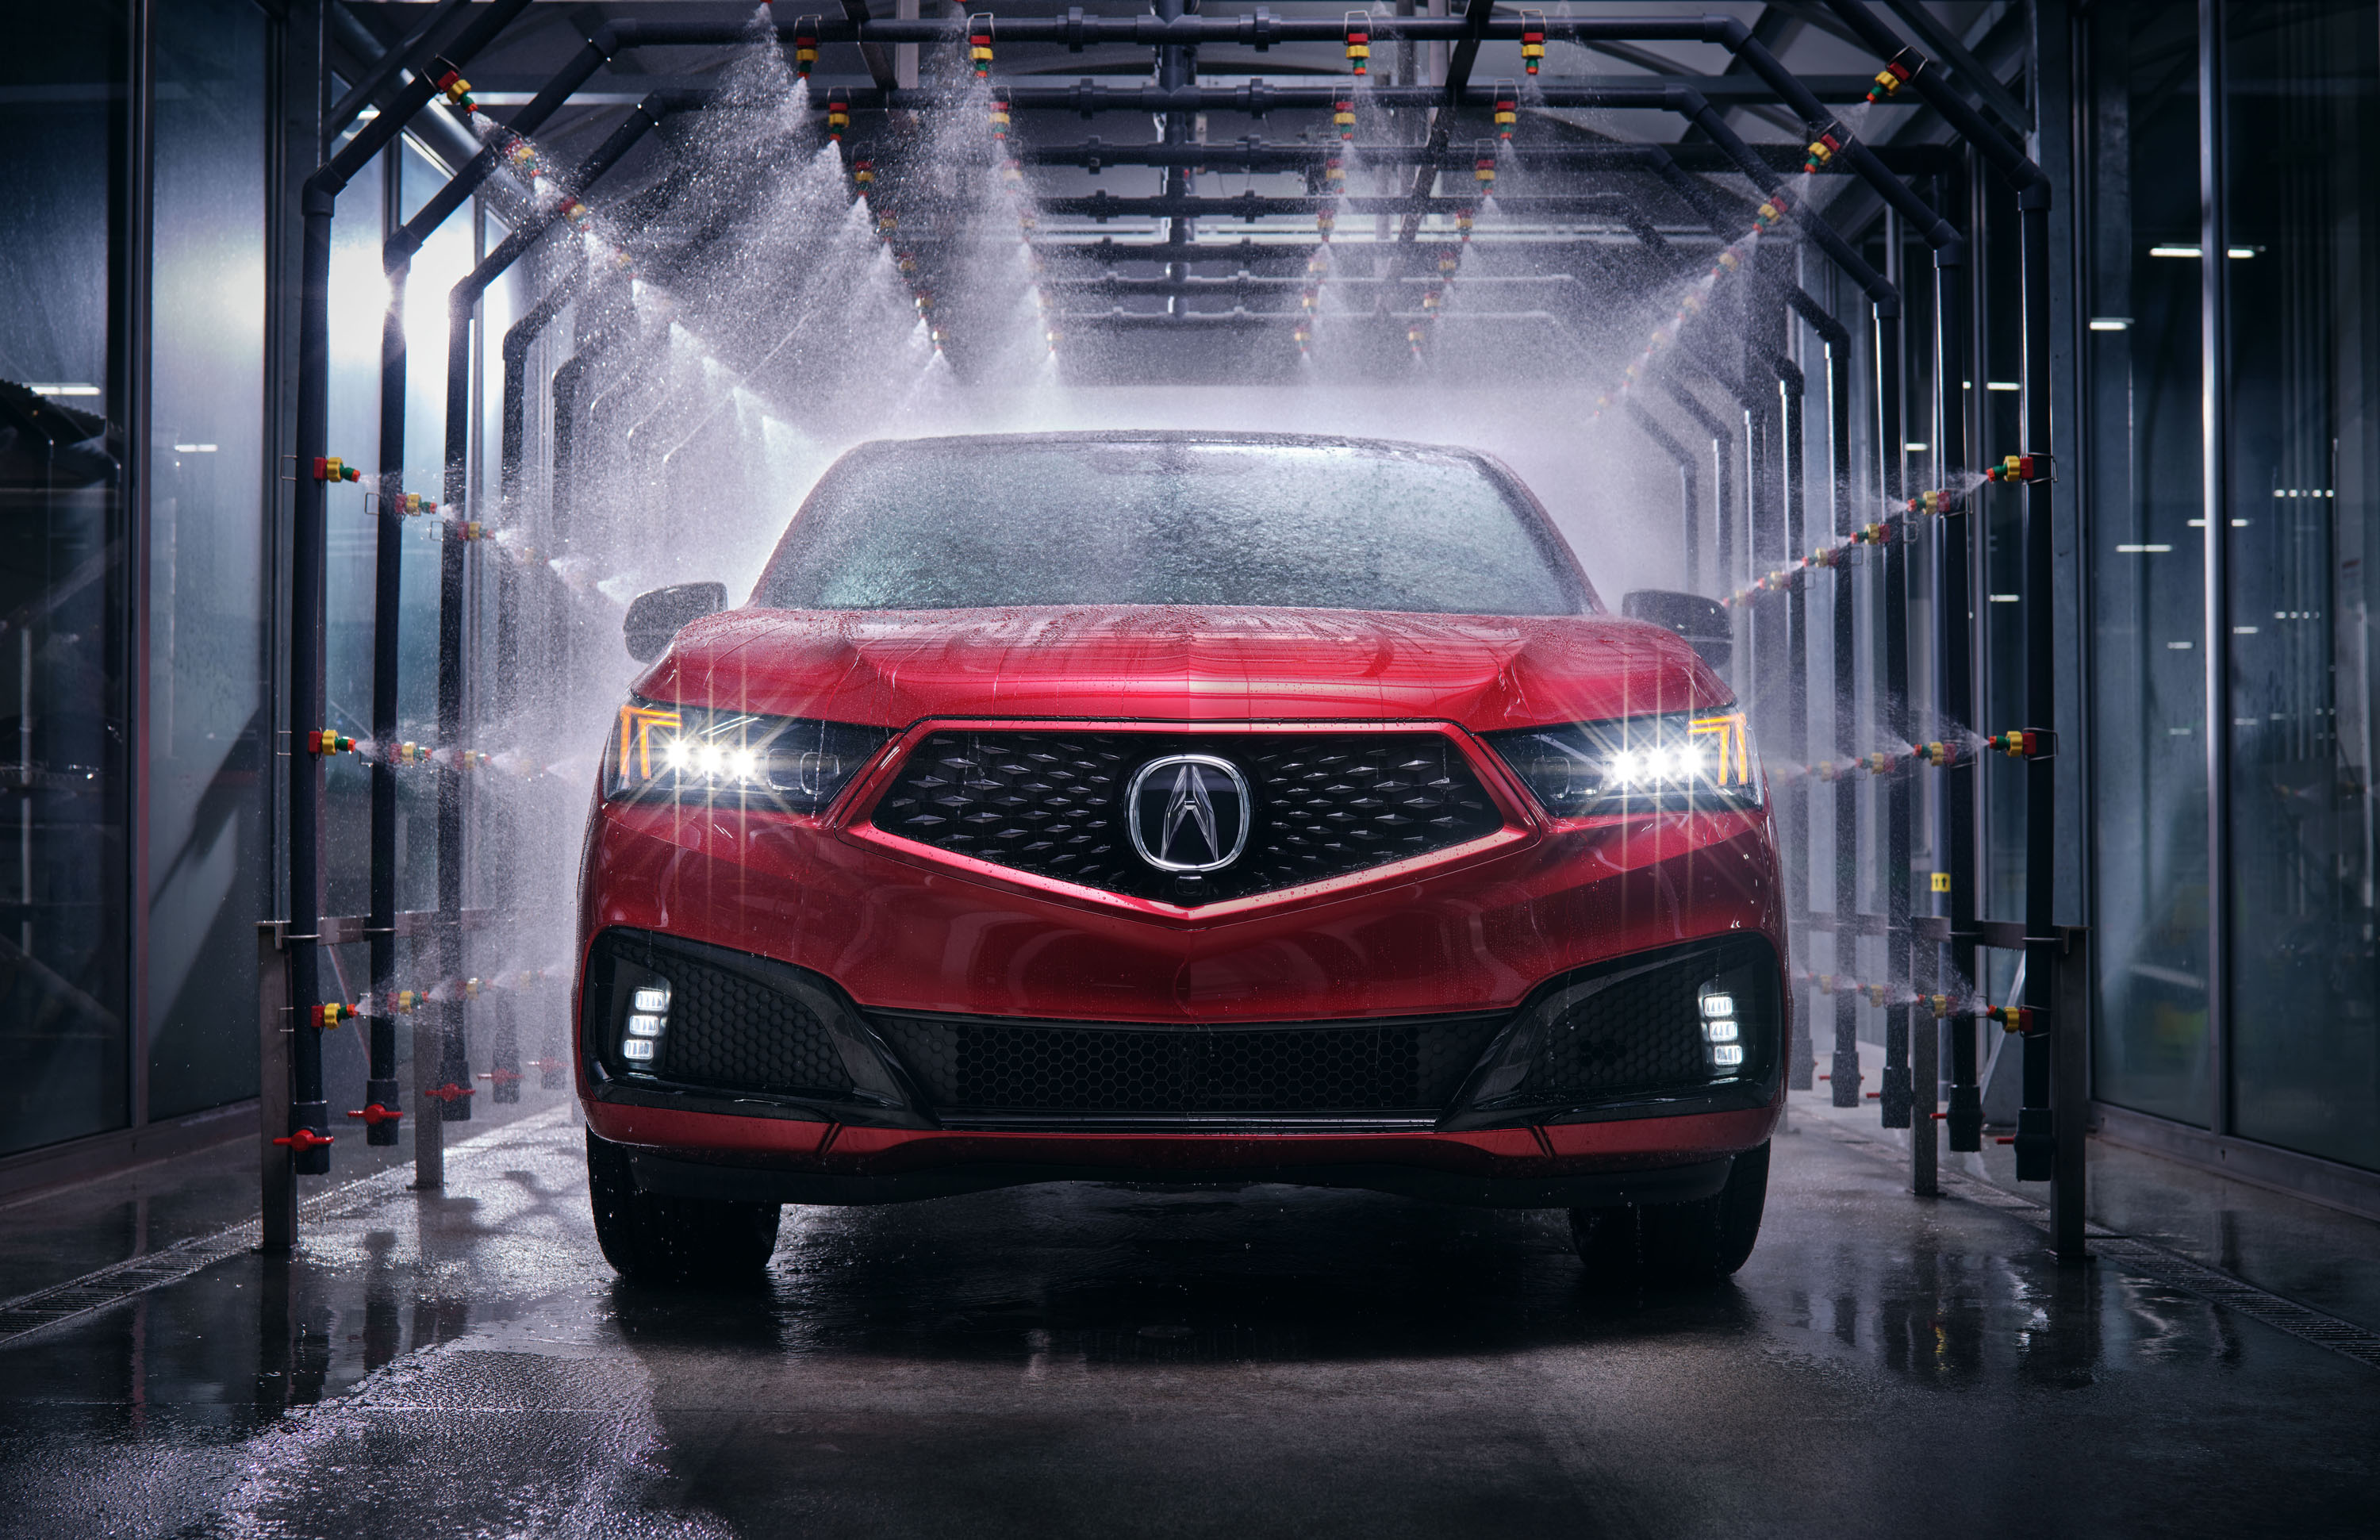 The Acura car factory in Marysville, Ohio, USA, has been producing handcrafted NSX sports cars since 2016 and TLX PMC Edition sedans since 2017. A new crossover called the MDX PMC Edition will join the lineup soon.